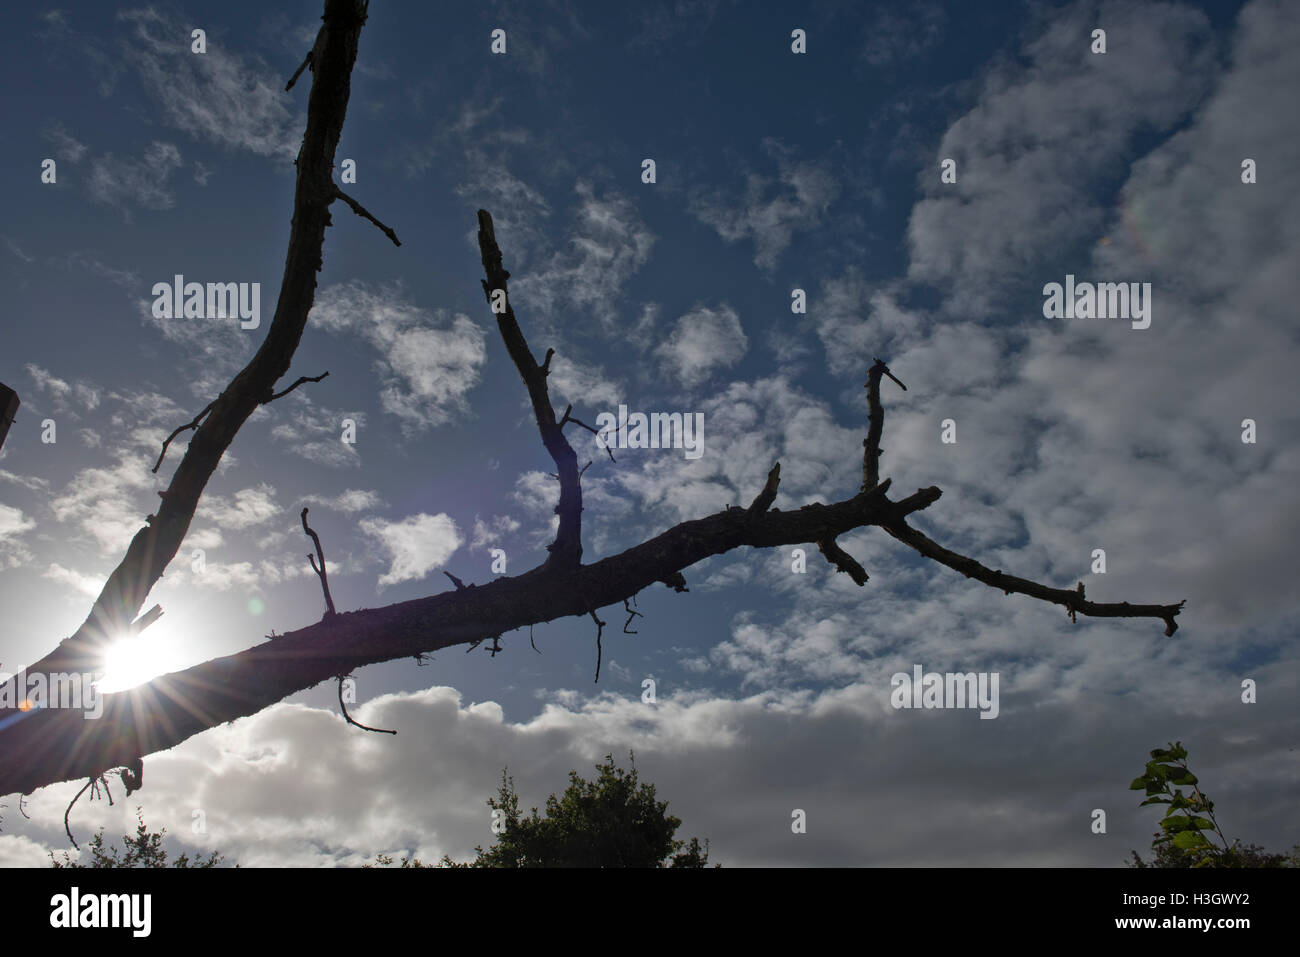 Silhouette of a fallen branch on an old oak tree, sun behind with blue sky and light fluffy clouds, Berkshire, October - Stock Image